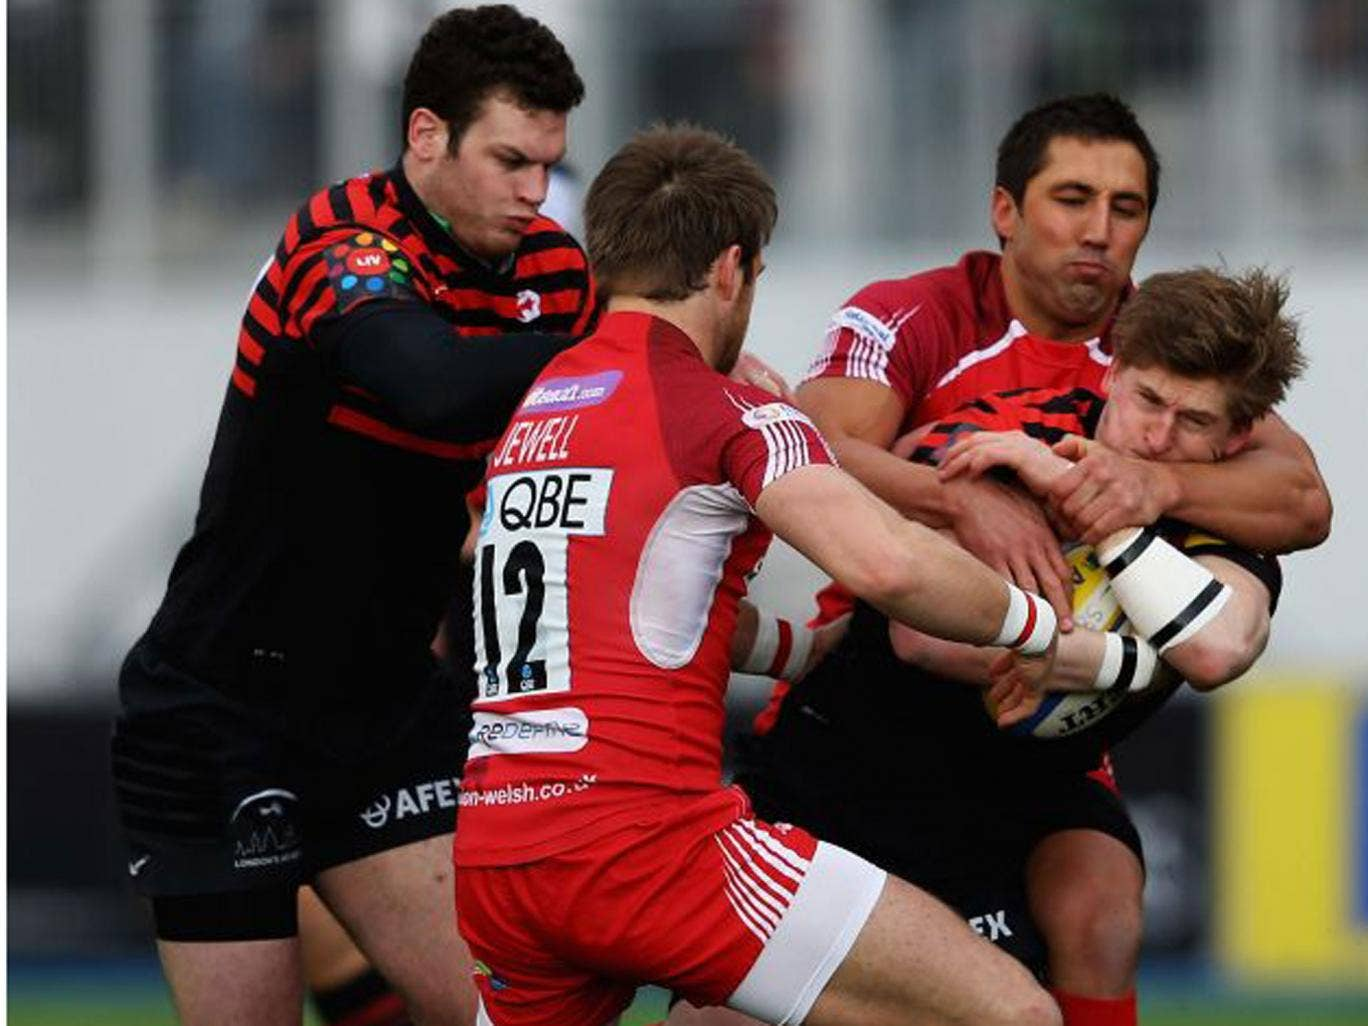 Gavin Henson, of London Welsh, ensures there is no way through for Saracens' tryscorer David Strettle this timeG